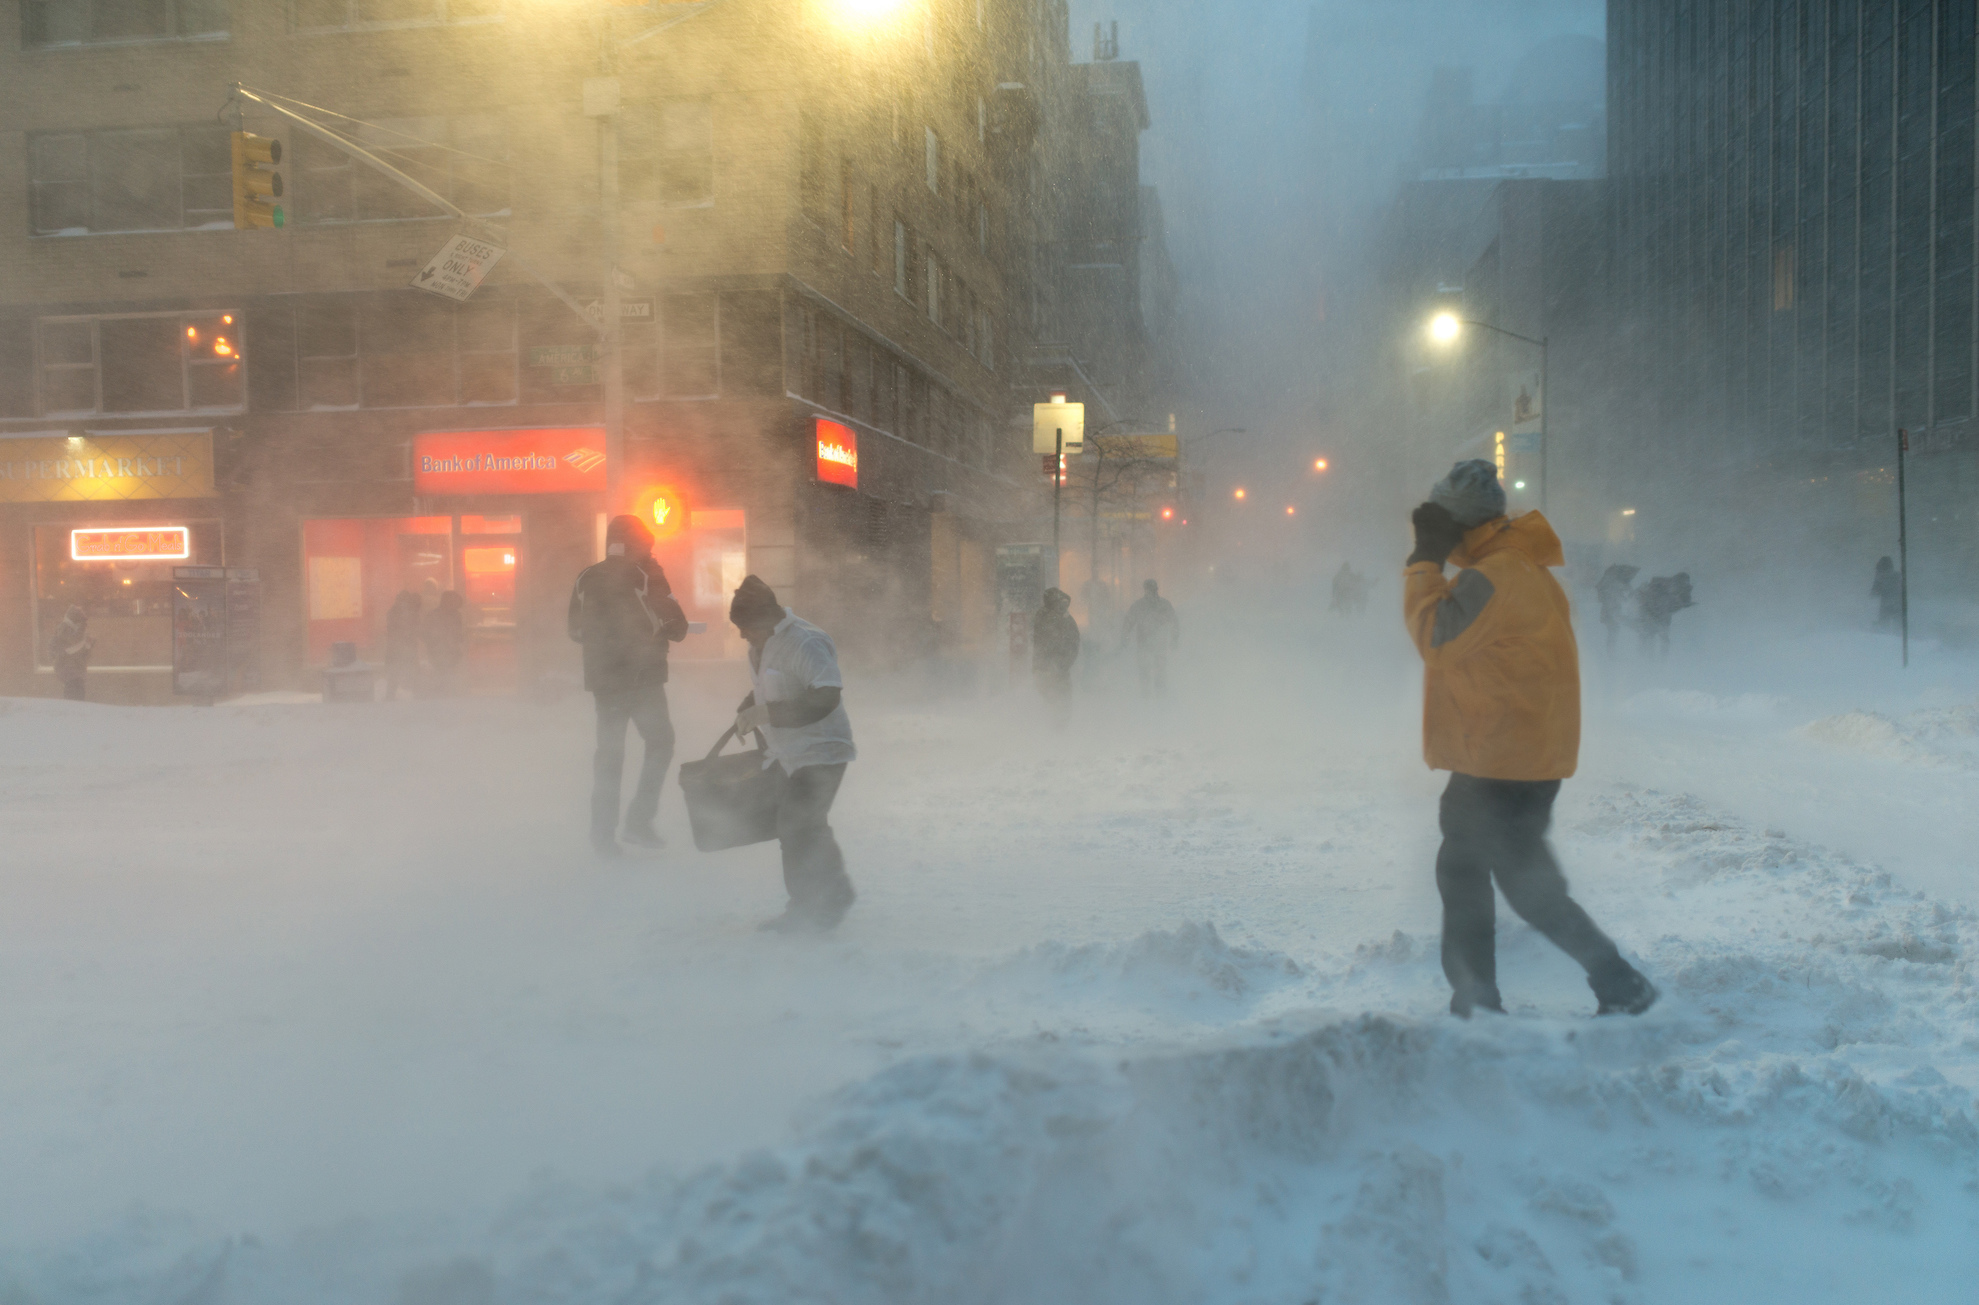 Extreme cold increases the risk of illness and death among people with cardiovascular and respiratory diseases, while extreme heat is risky for people with renal diseases.